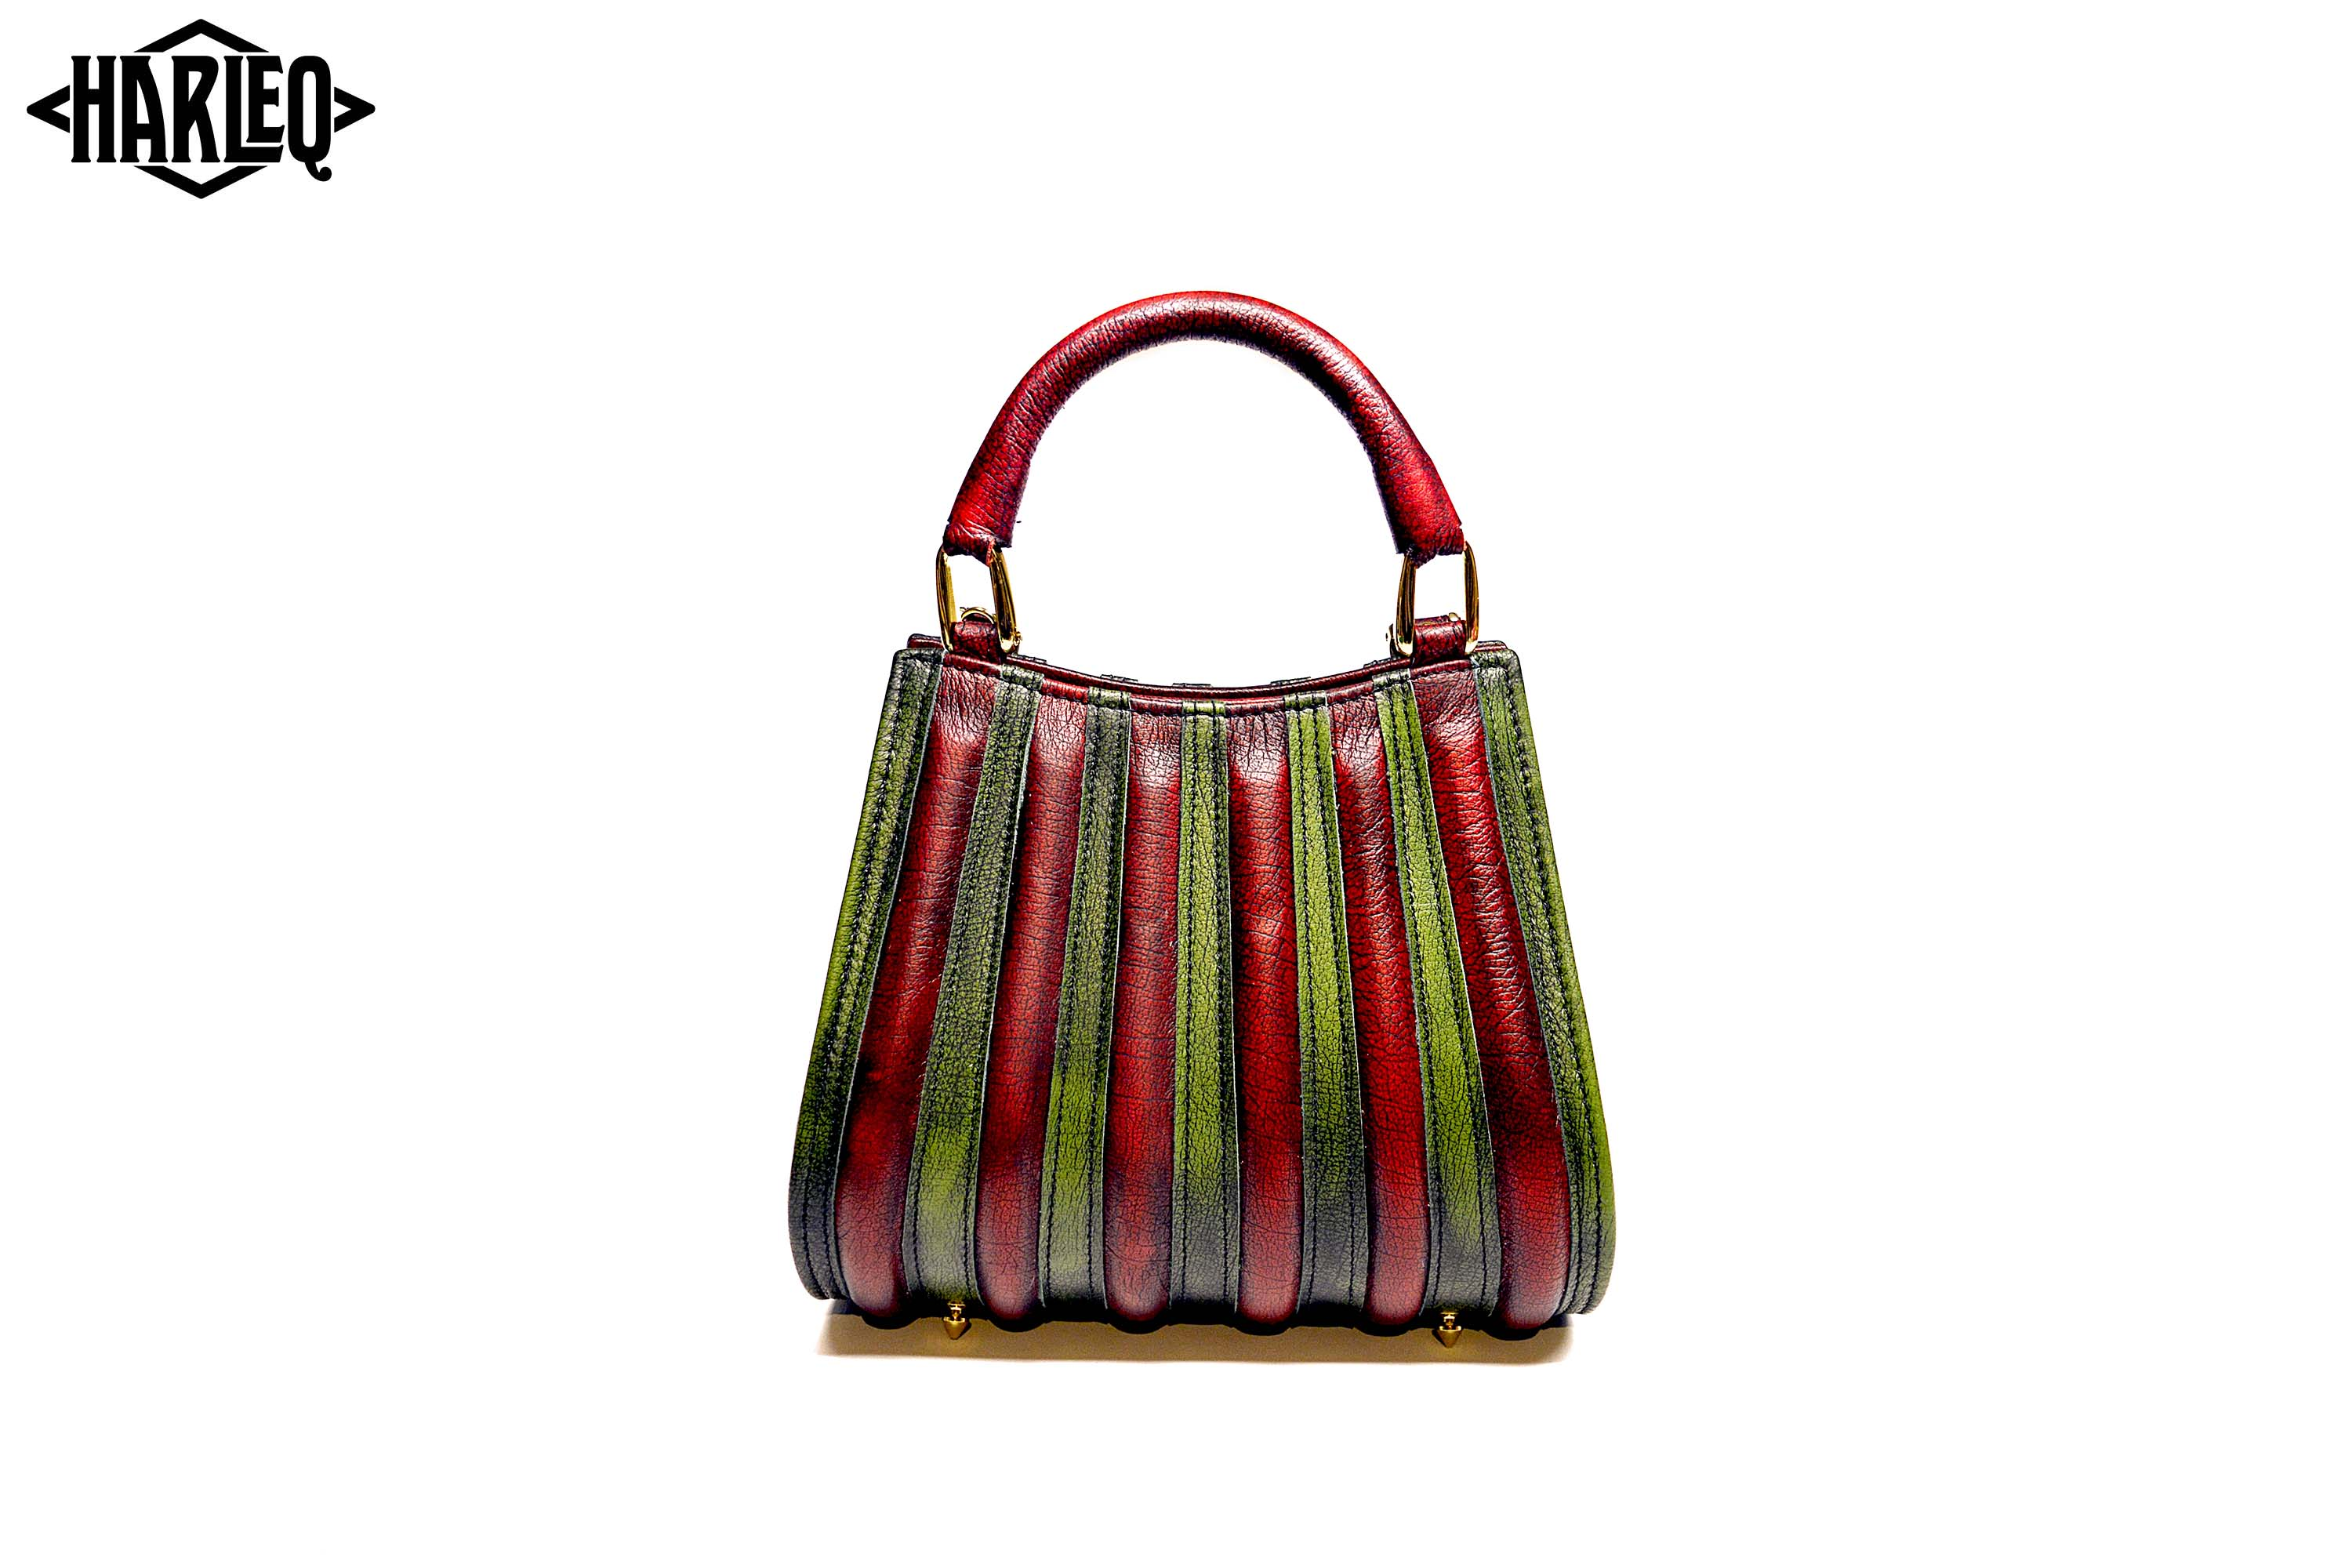 harleq the spine mini luxury bag red green leathers